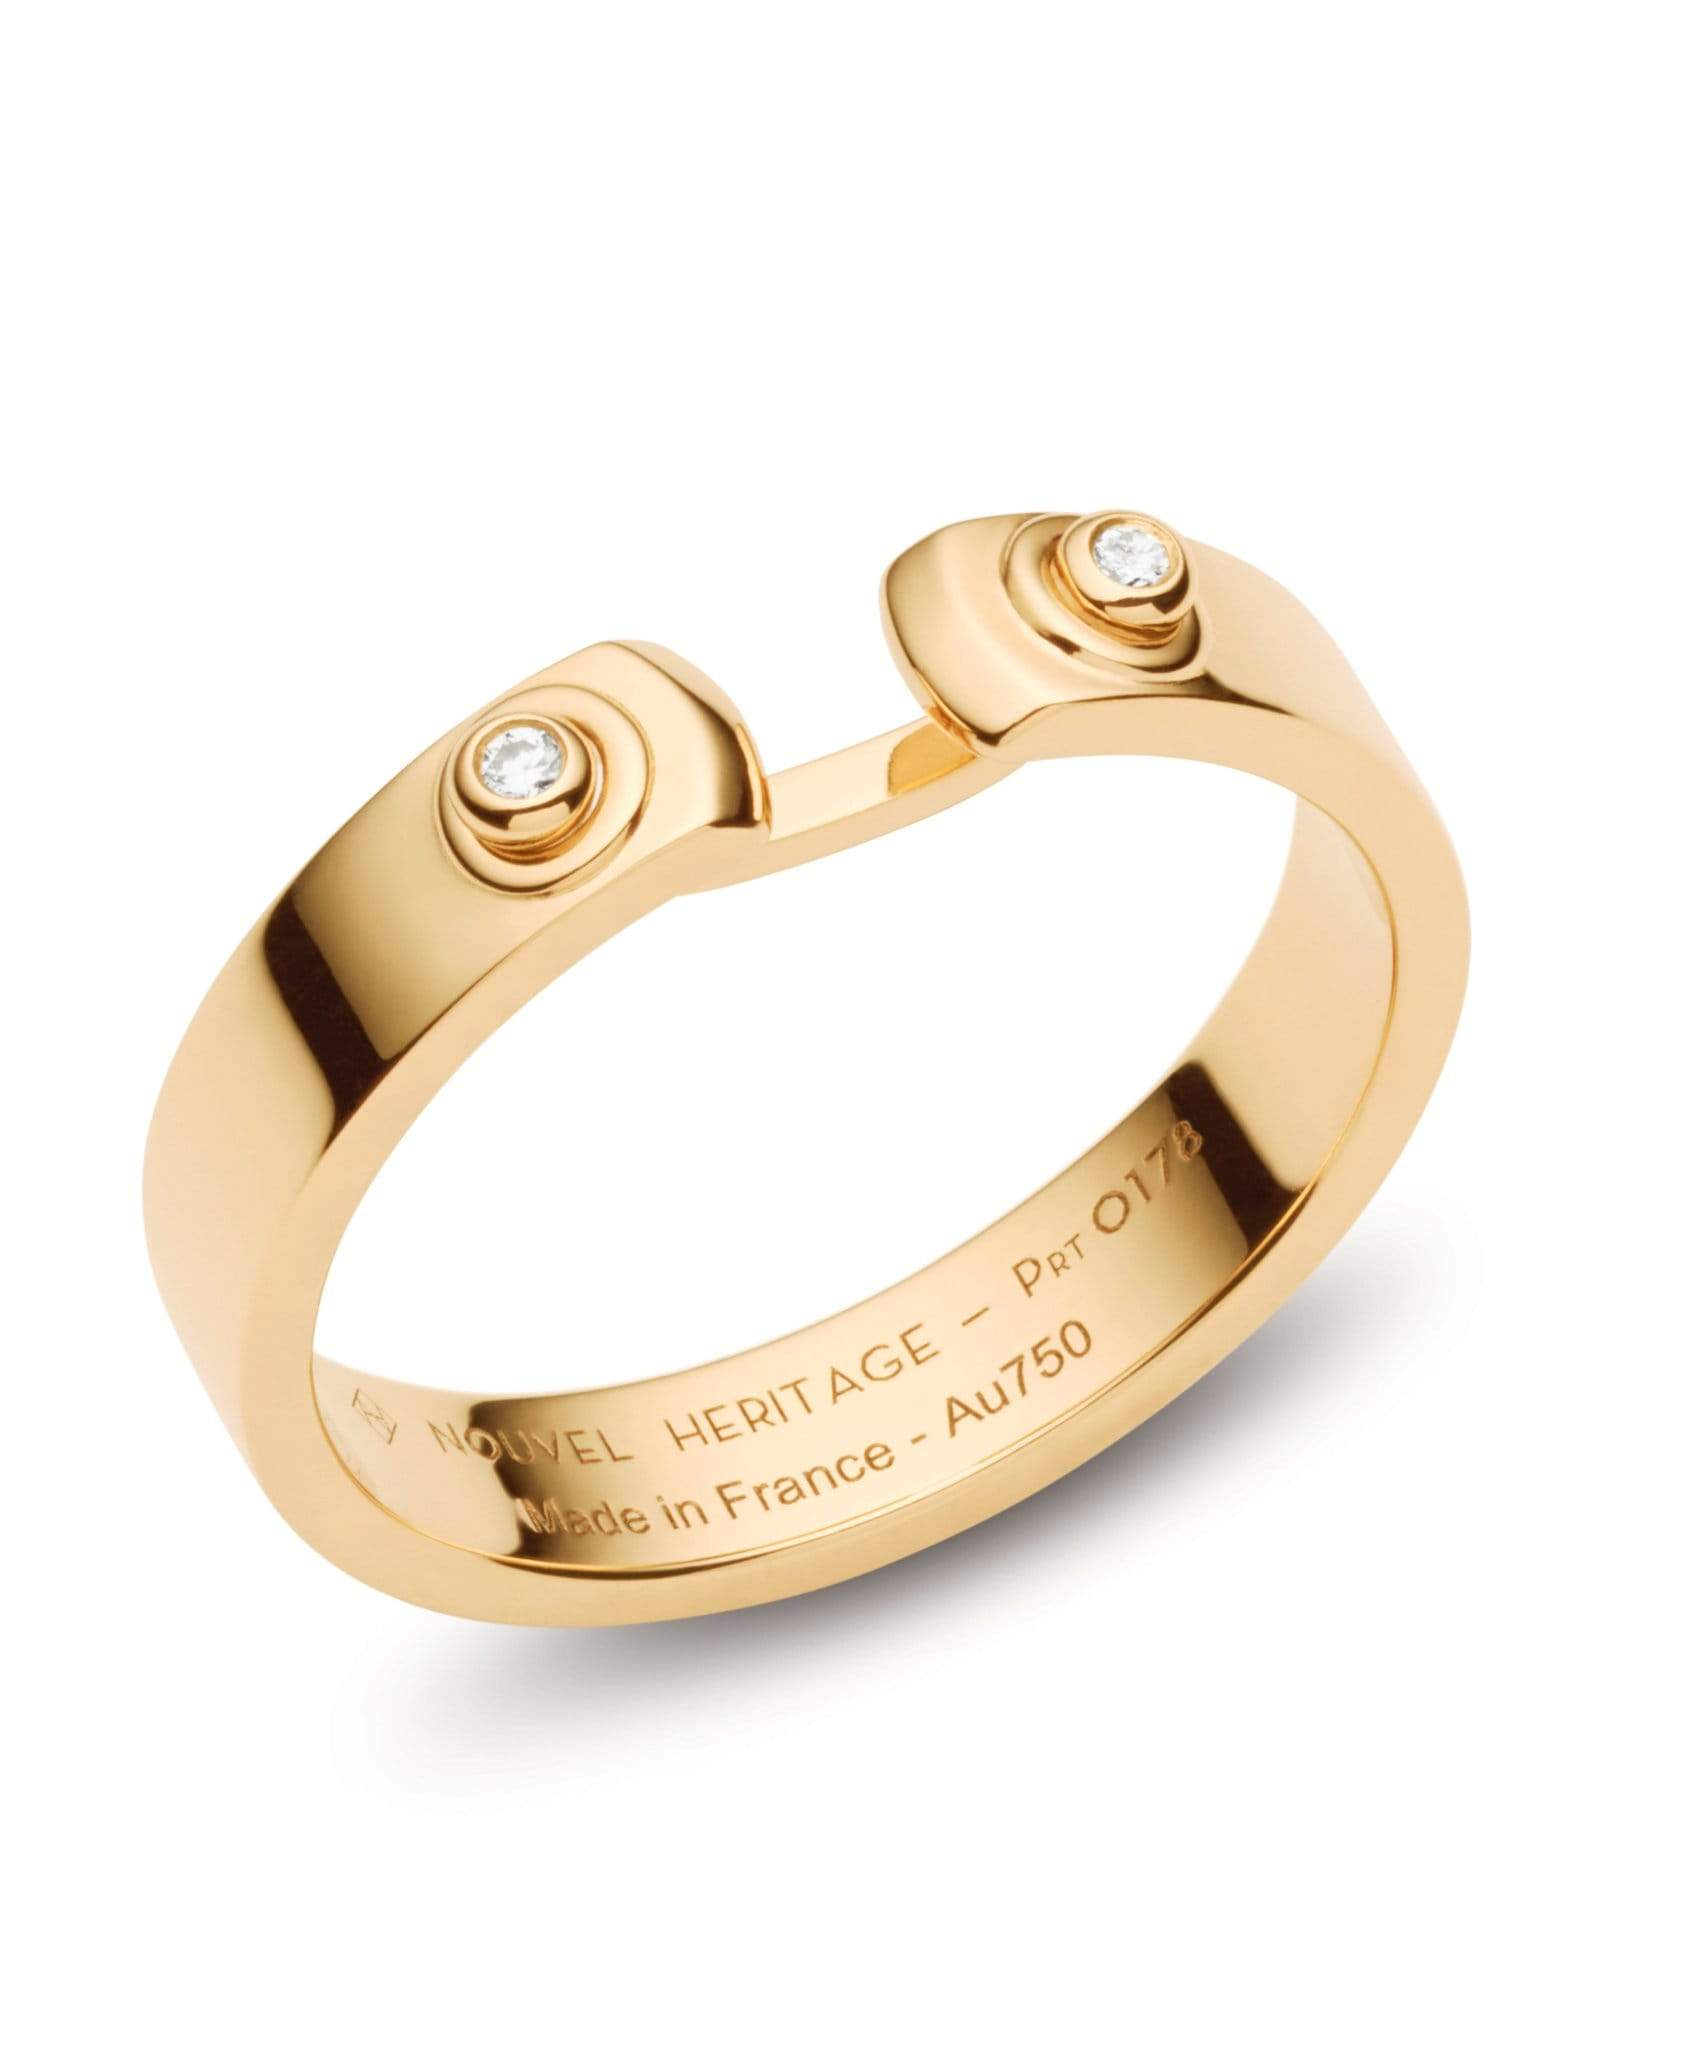 Monday Morning Mood Ring: Discover Luxury Fine Jewelry | Nouvel Heritage || Yellow Gold